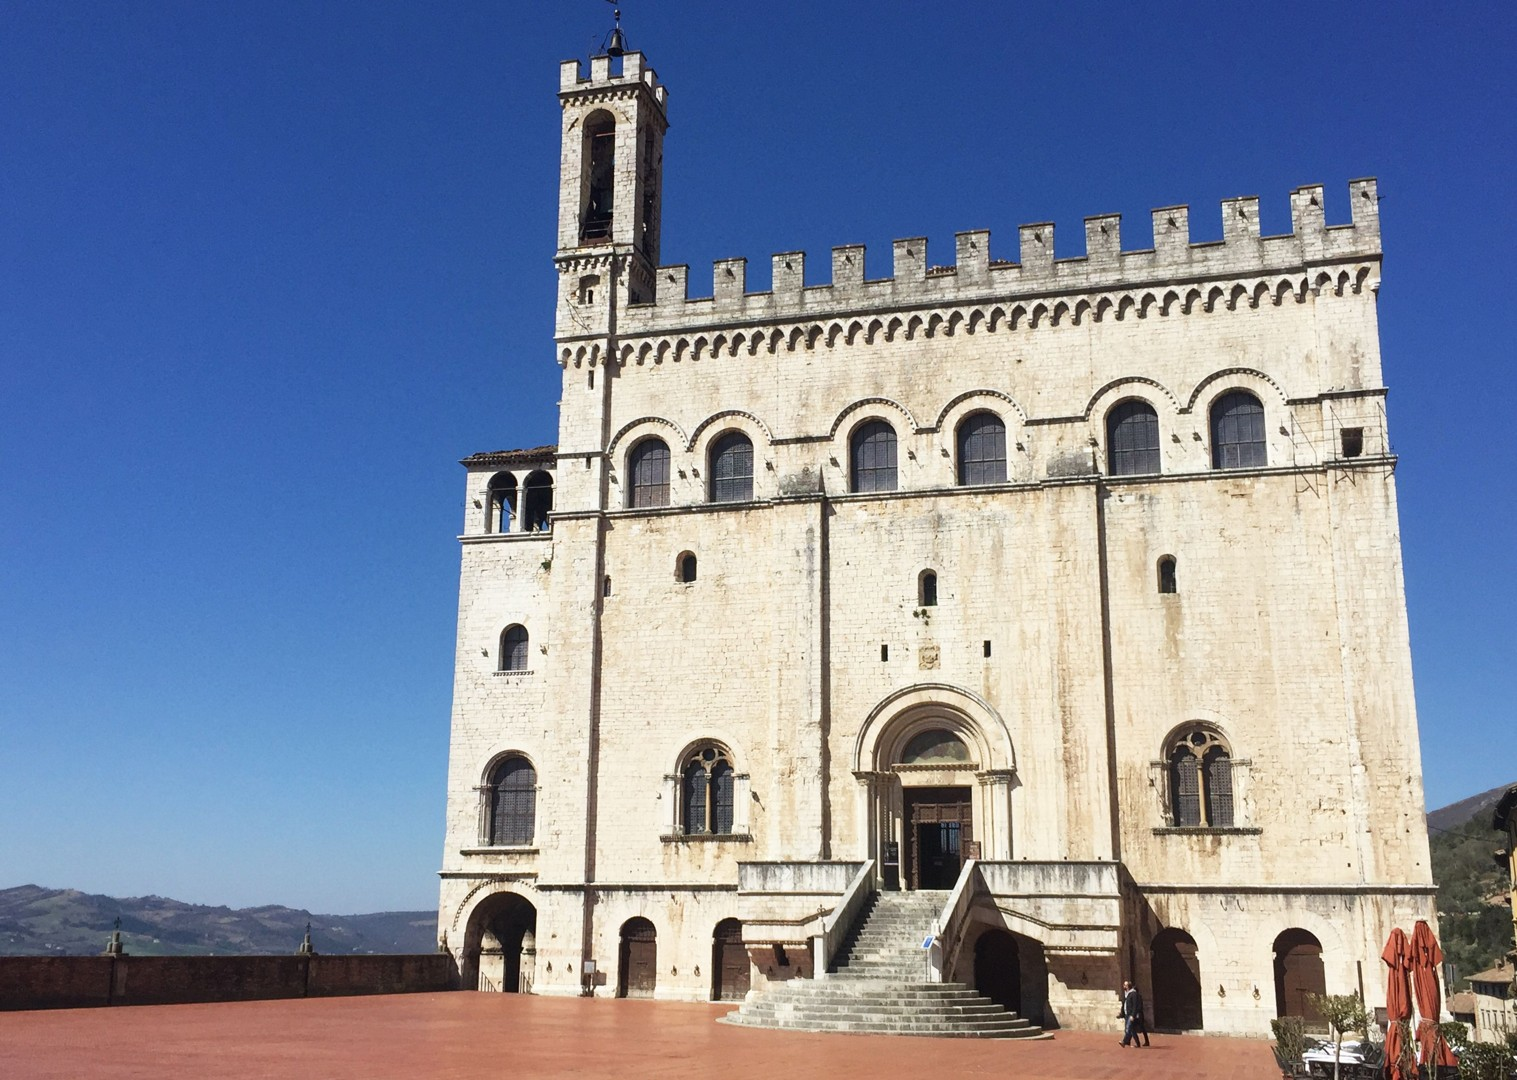 san-francesco-di-assisi-self-guided-leisure-cycling-holiday-in-italy.JPG - Italy - Green Heart of Umbria - Self-Guided Leisure Cycling Holiday - Leisure Cycling